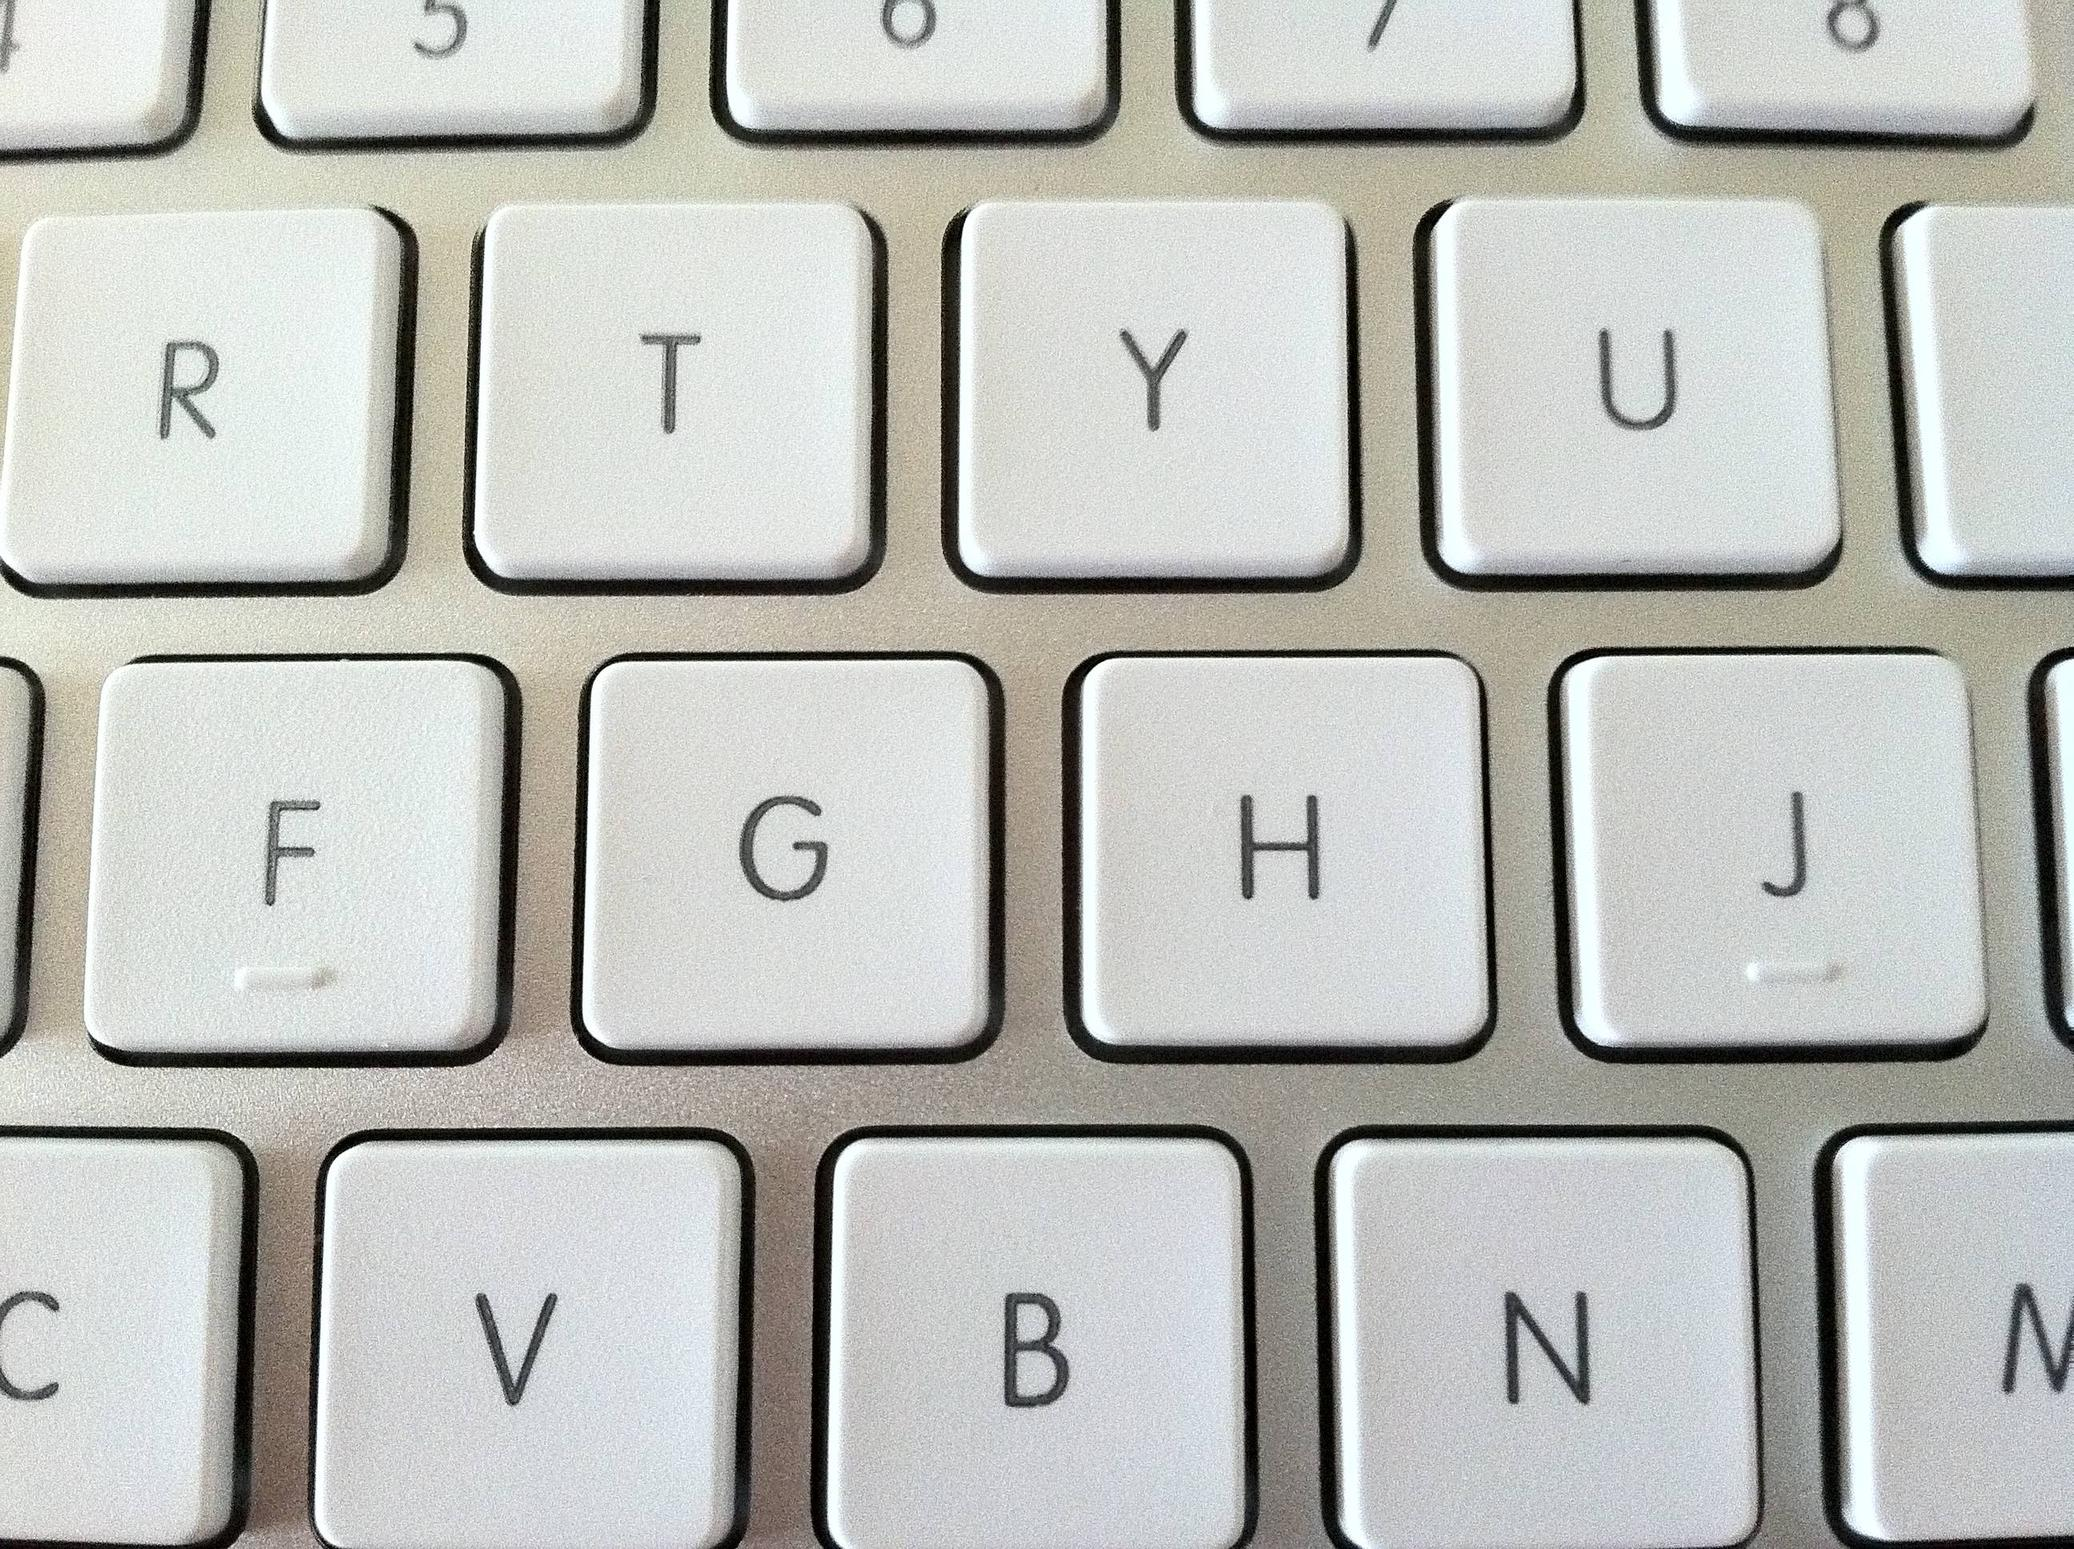 Free photo: Alphabet Keys - Strikes, Keys, Graphics - Free